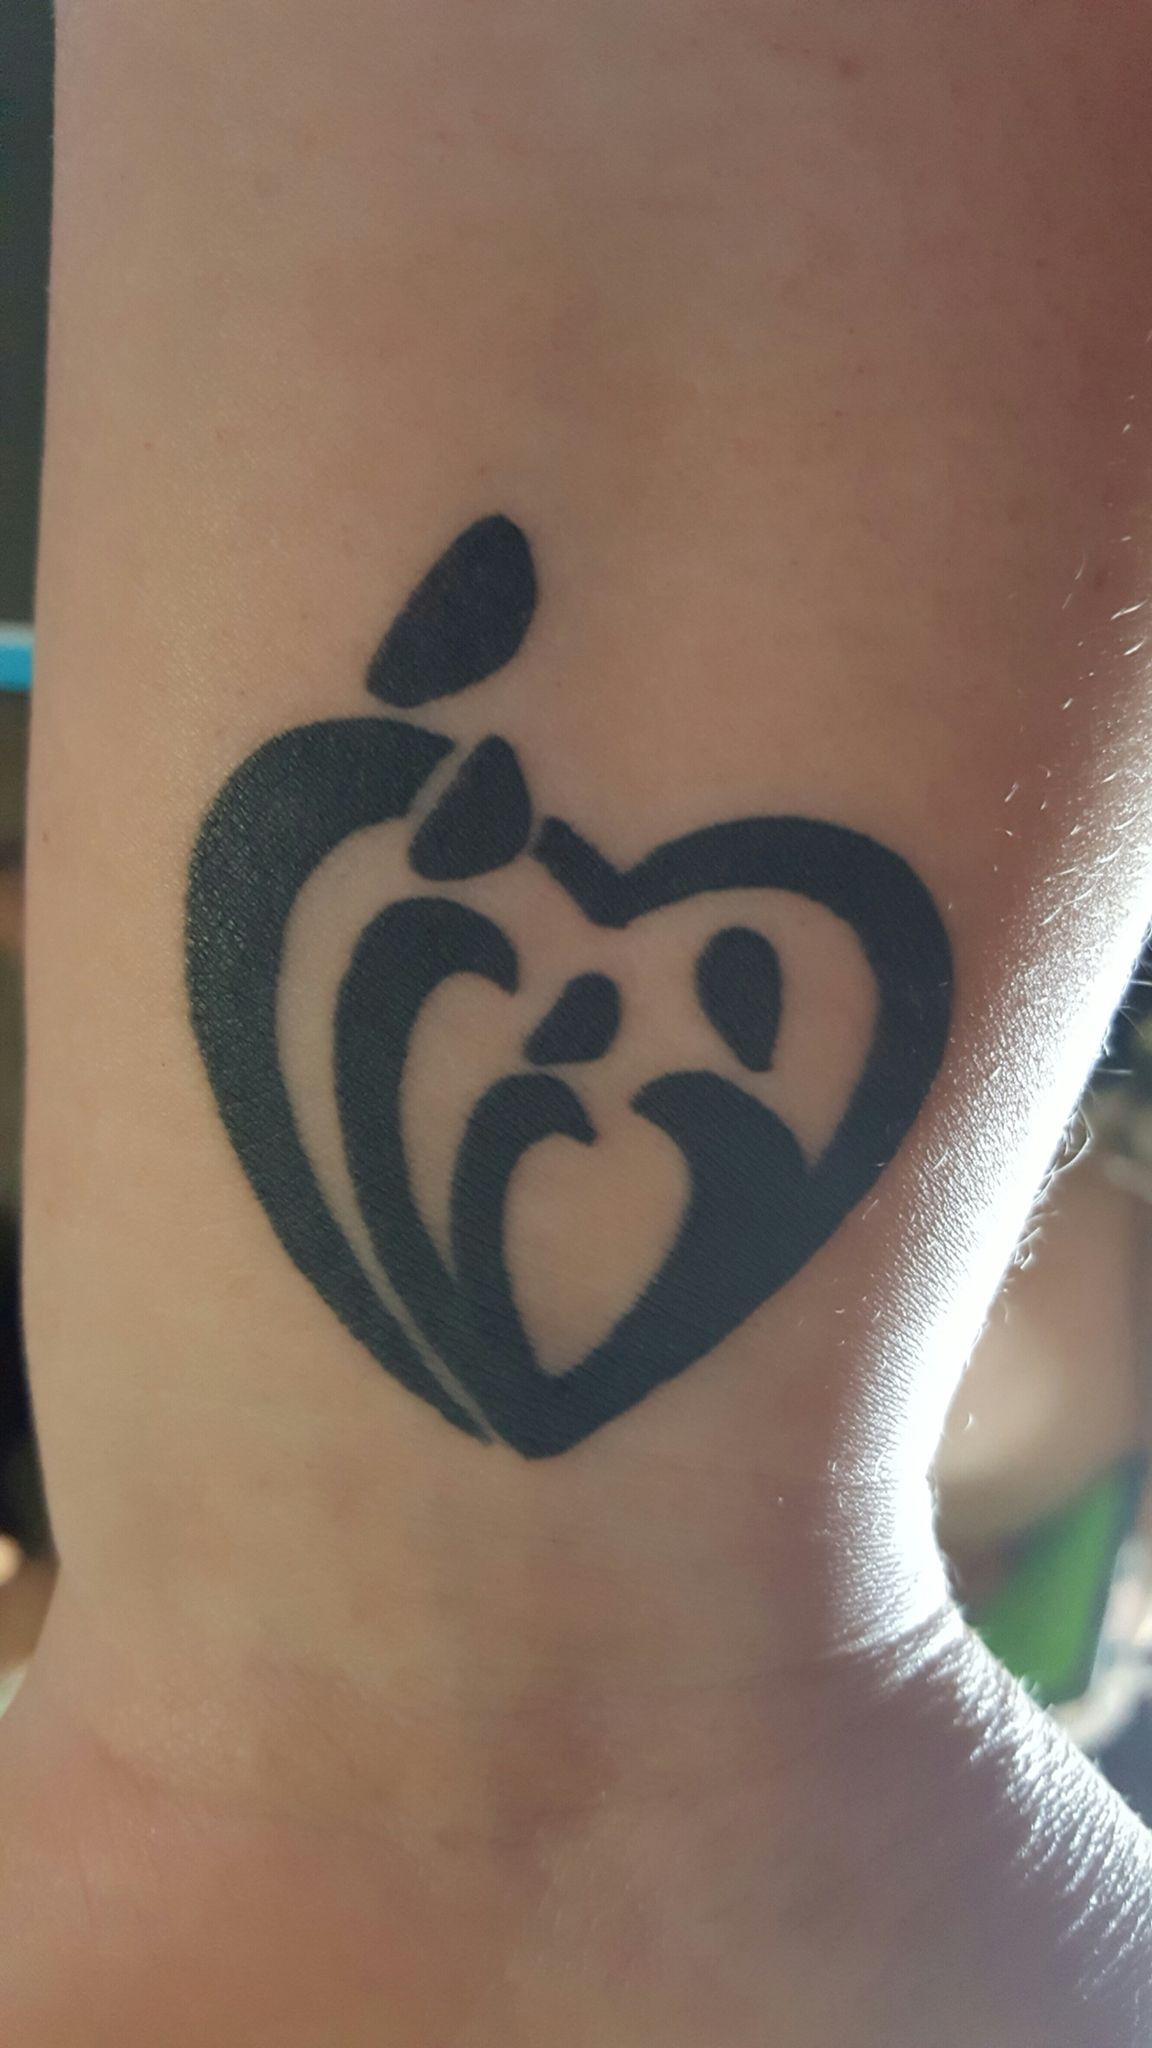 Twin baby name tattoo ideas  best images about feminine on pinterest  new tattoos tattoo